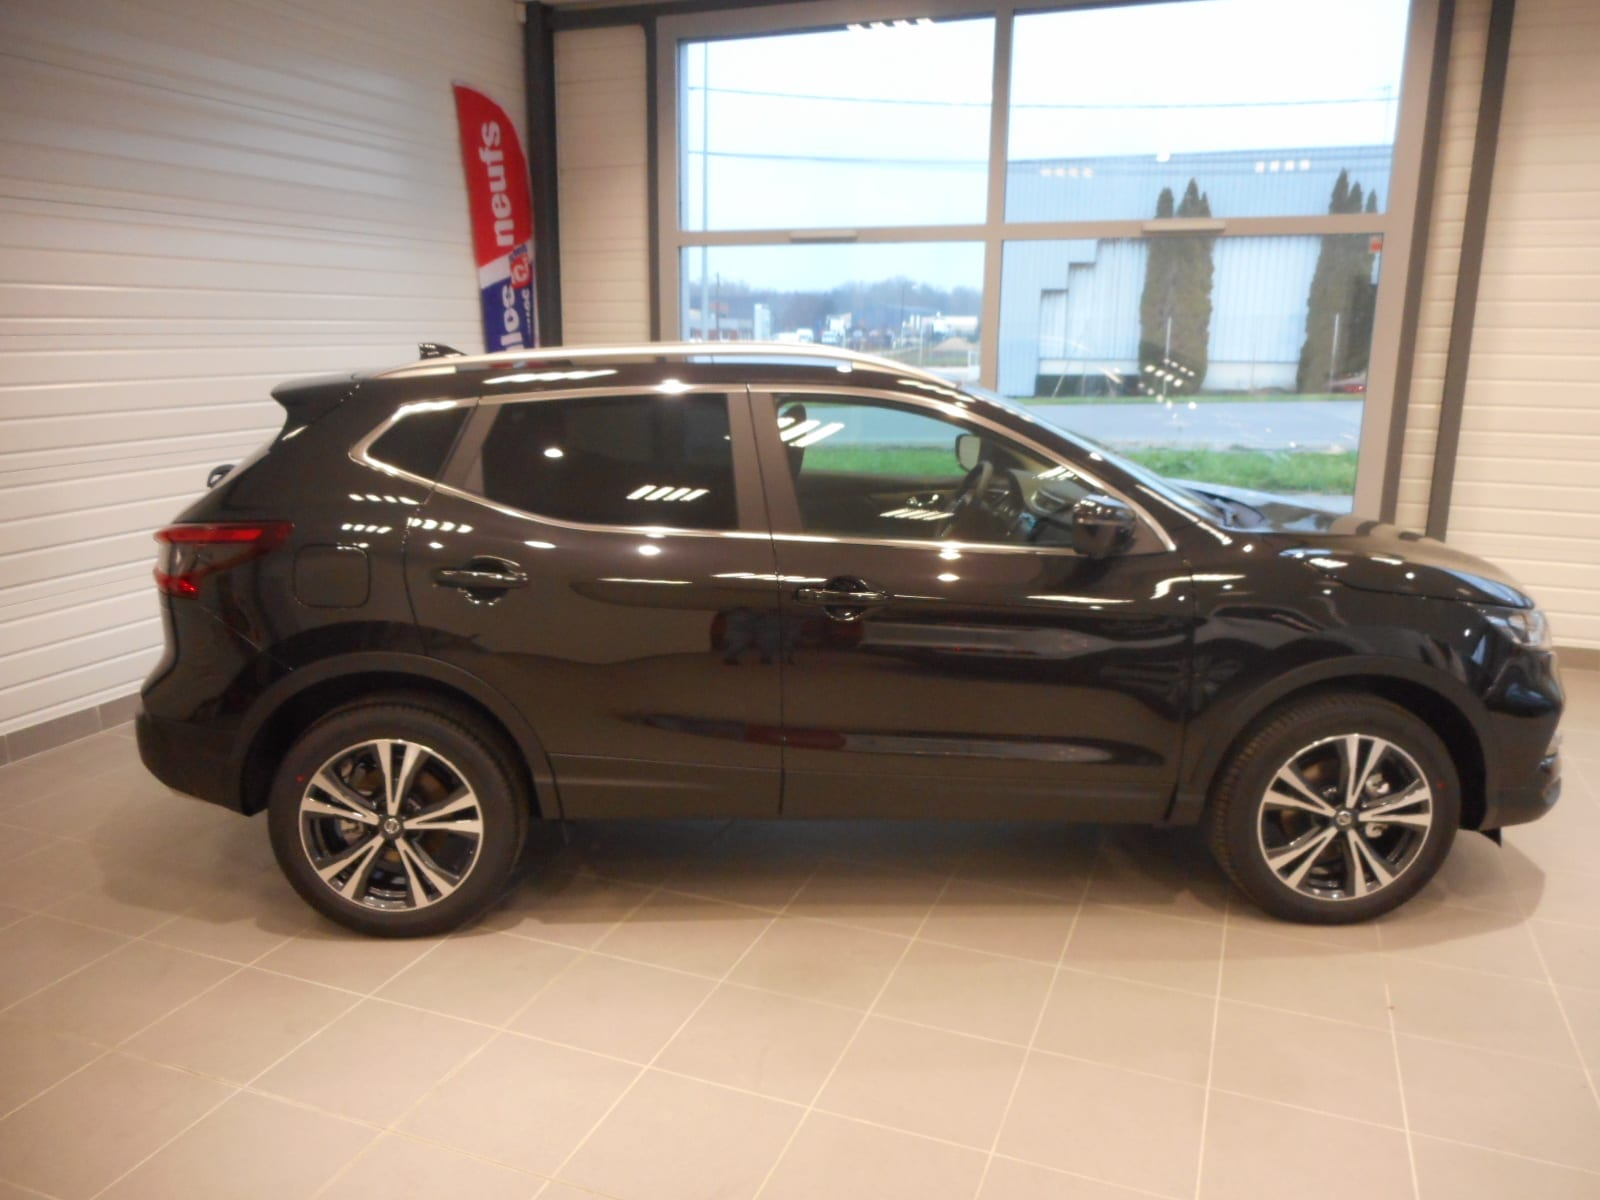 NISSAN QASHQAI 1.5 DCI 110 N CONNECTA PACK DESIGN - Image 5